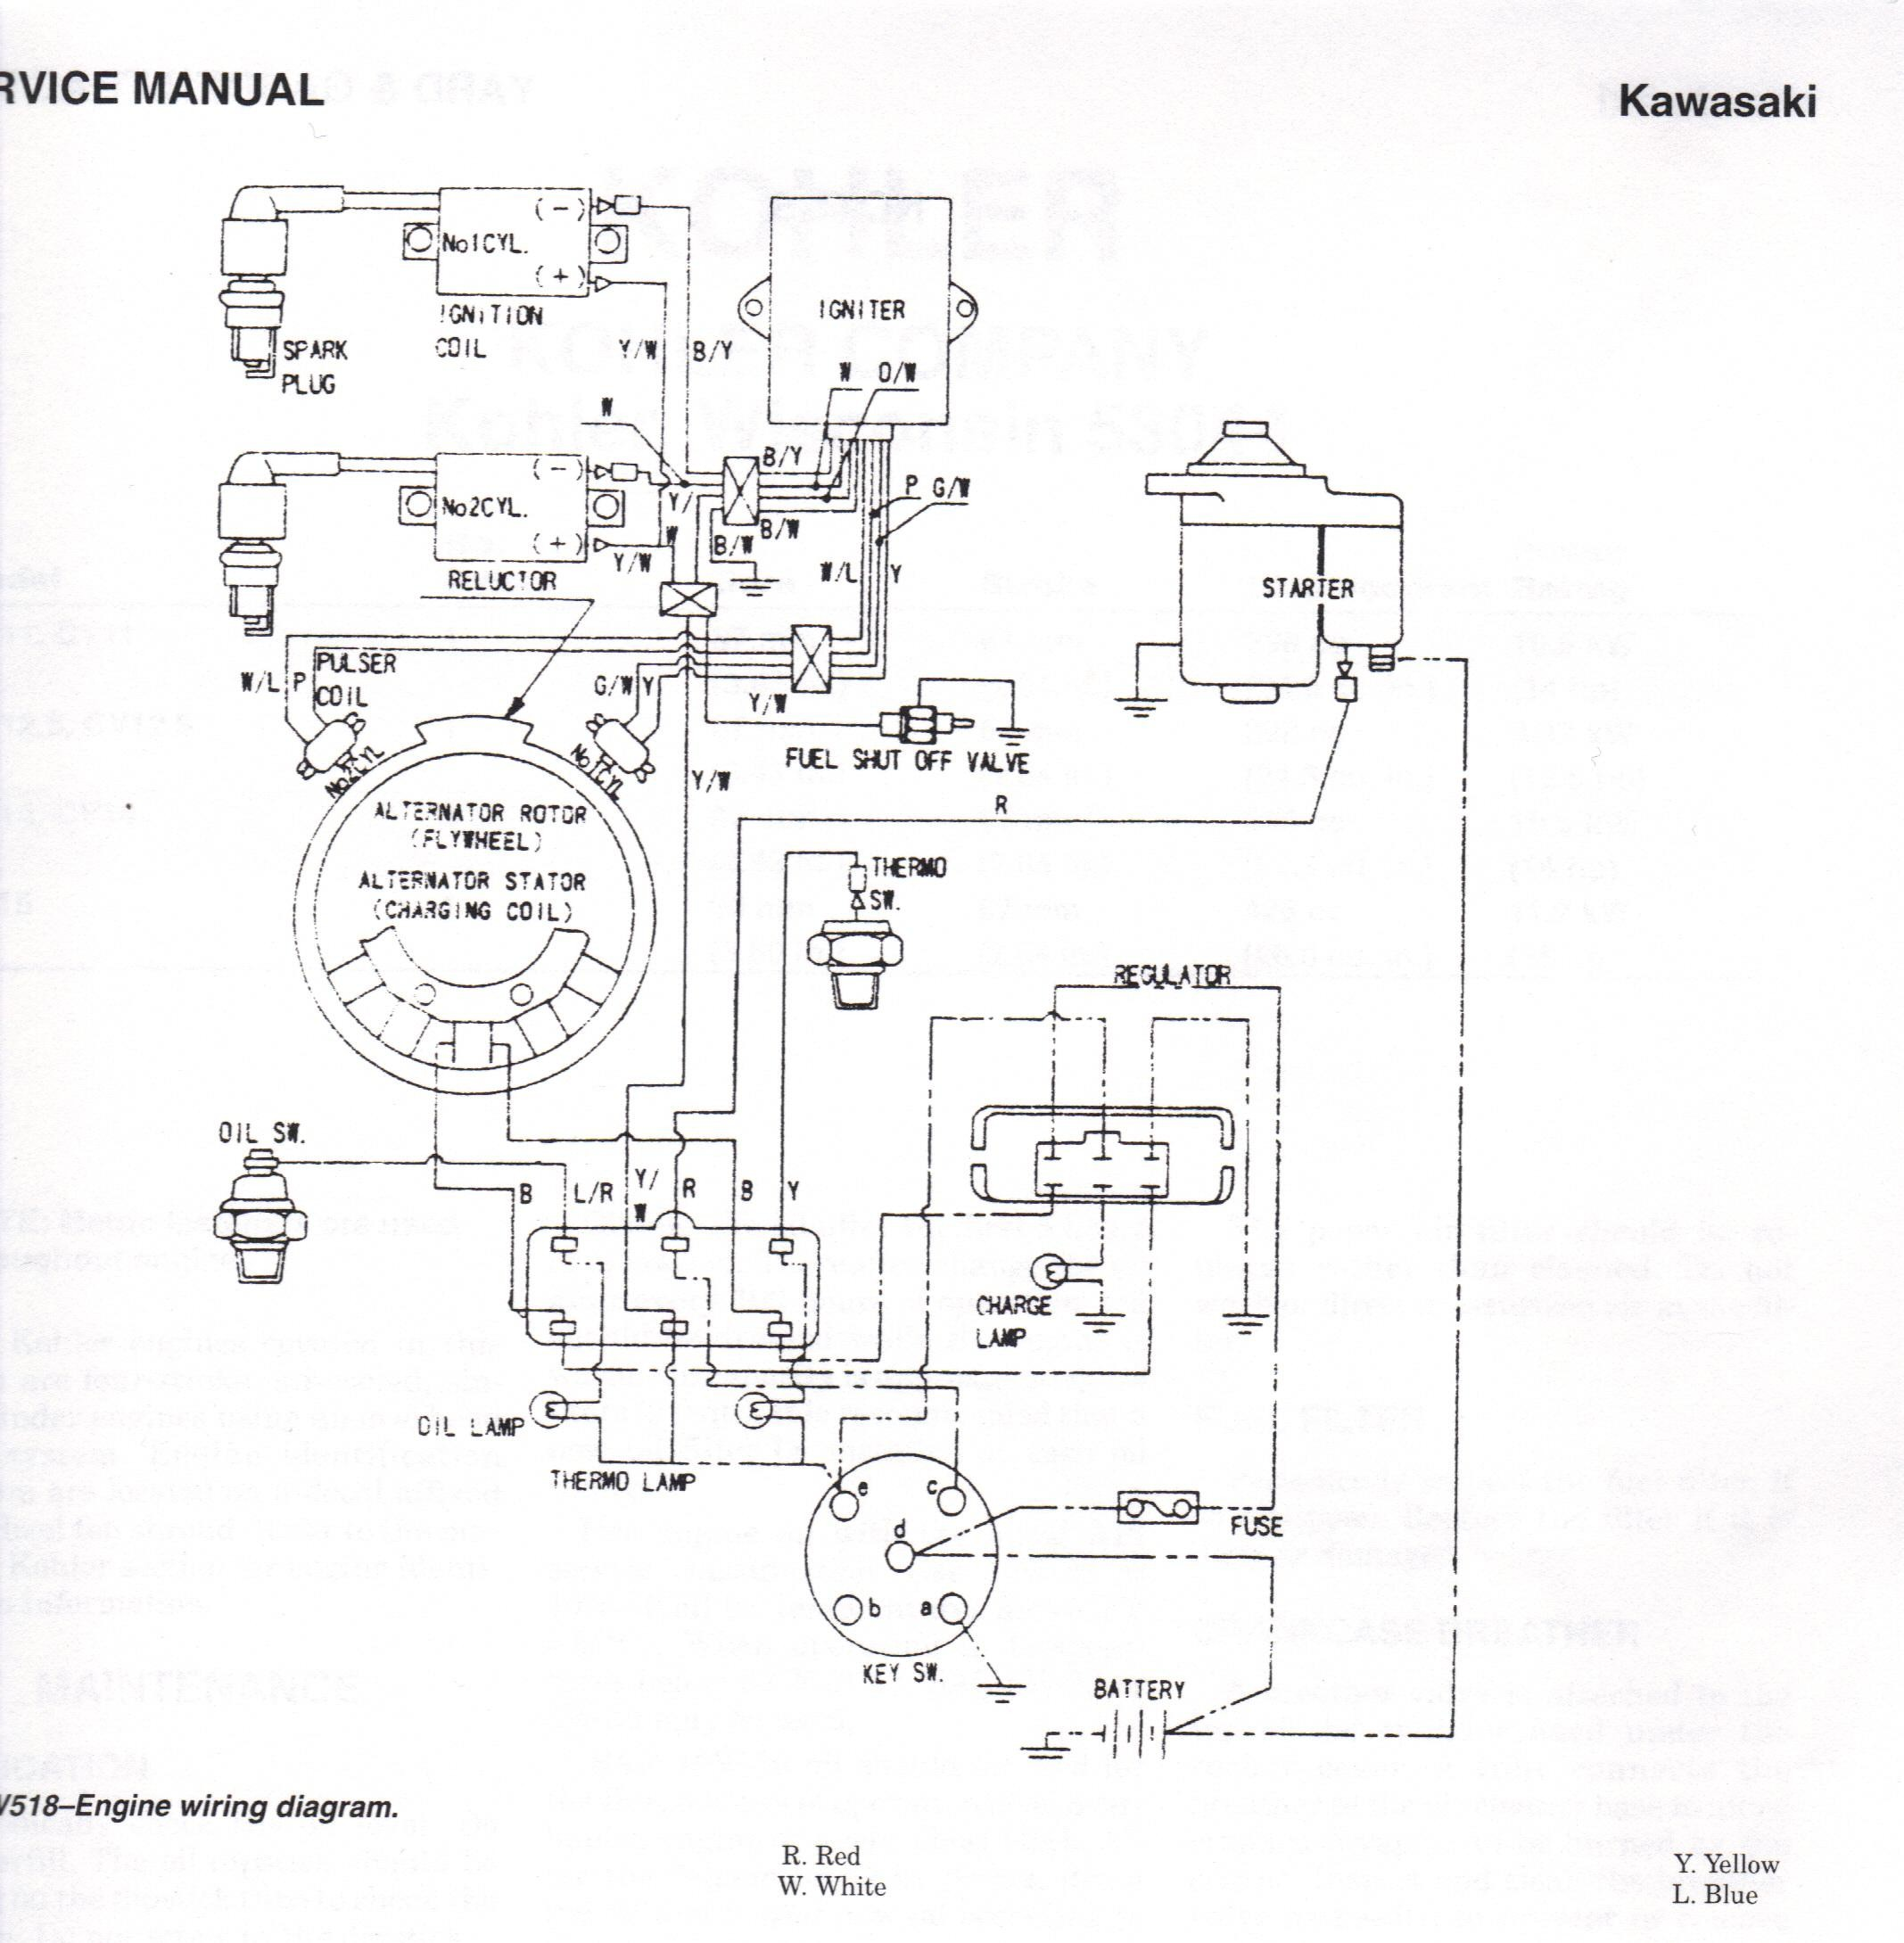 A Wiring Diagram for A 345 Jd Tractor Need to Find Info On Electrical Schematic for Deere 345 Lawn Of A Wiring Diagram for A 345 Jd Tractor